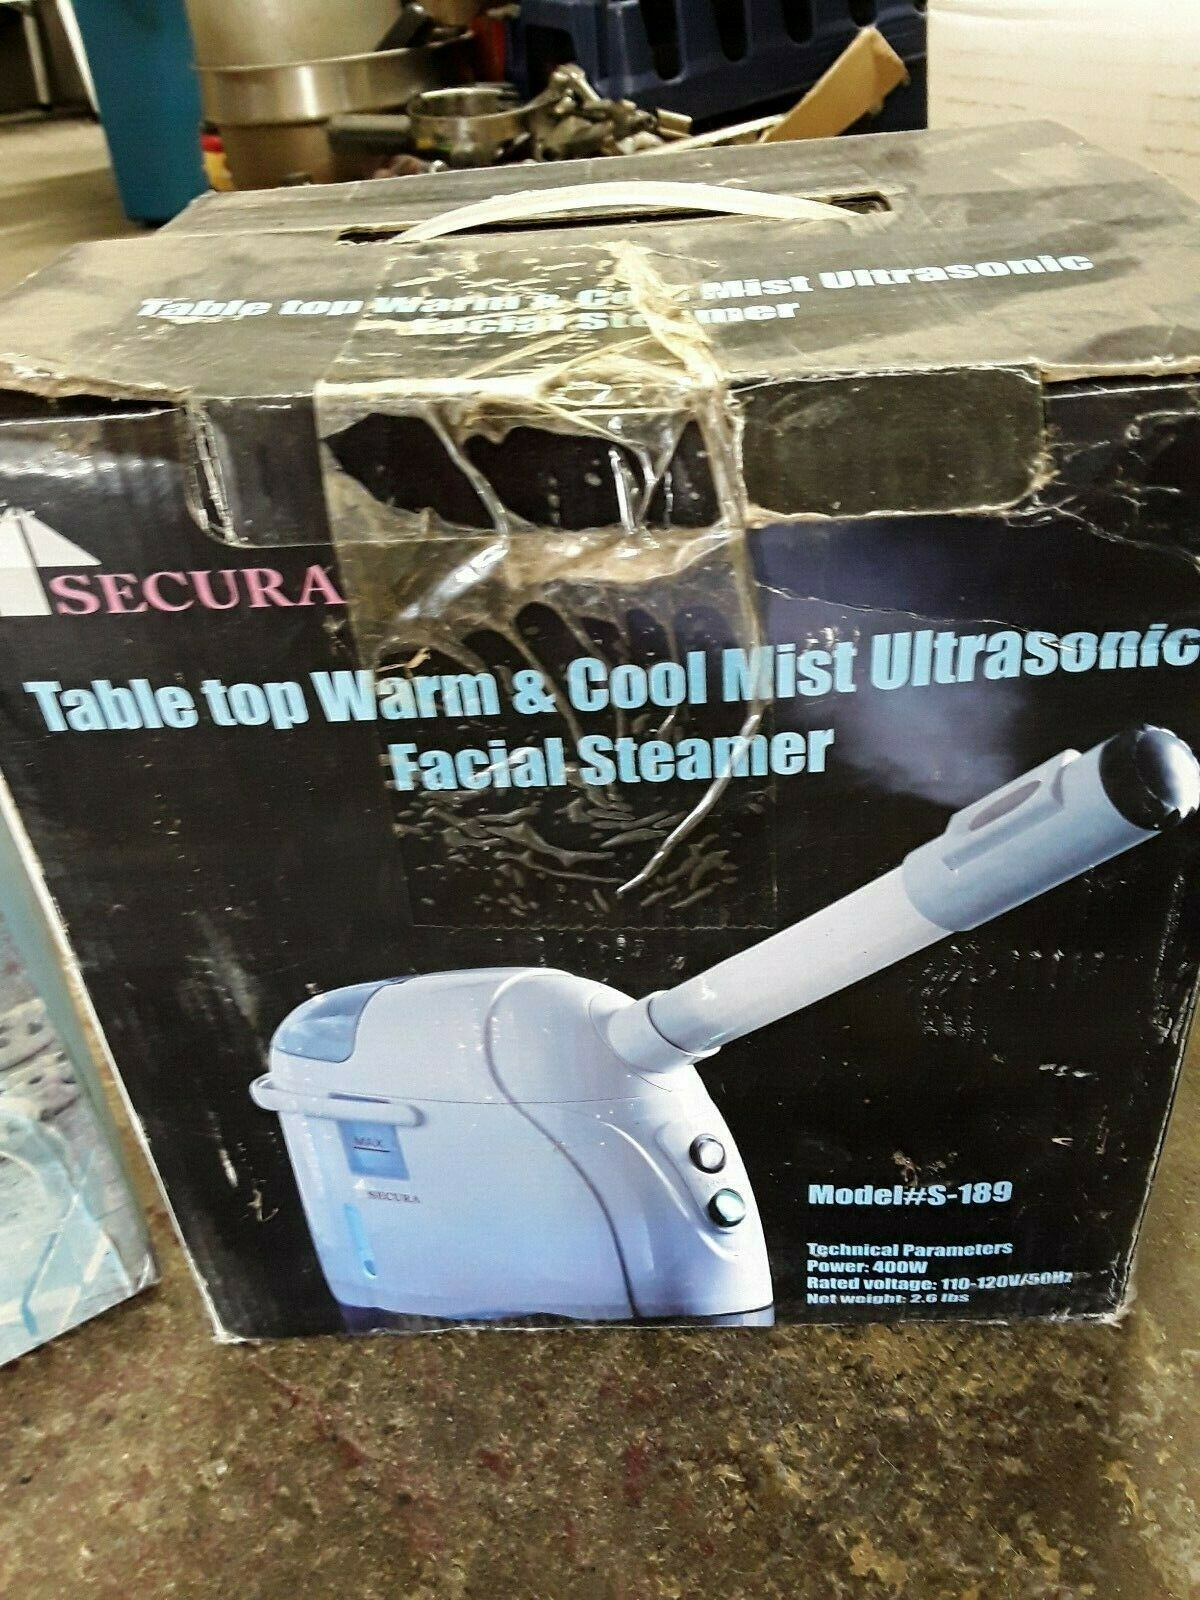 Secura Hair and Facial Steamer with Ozone Technology S-192